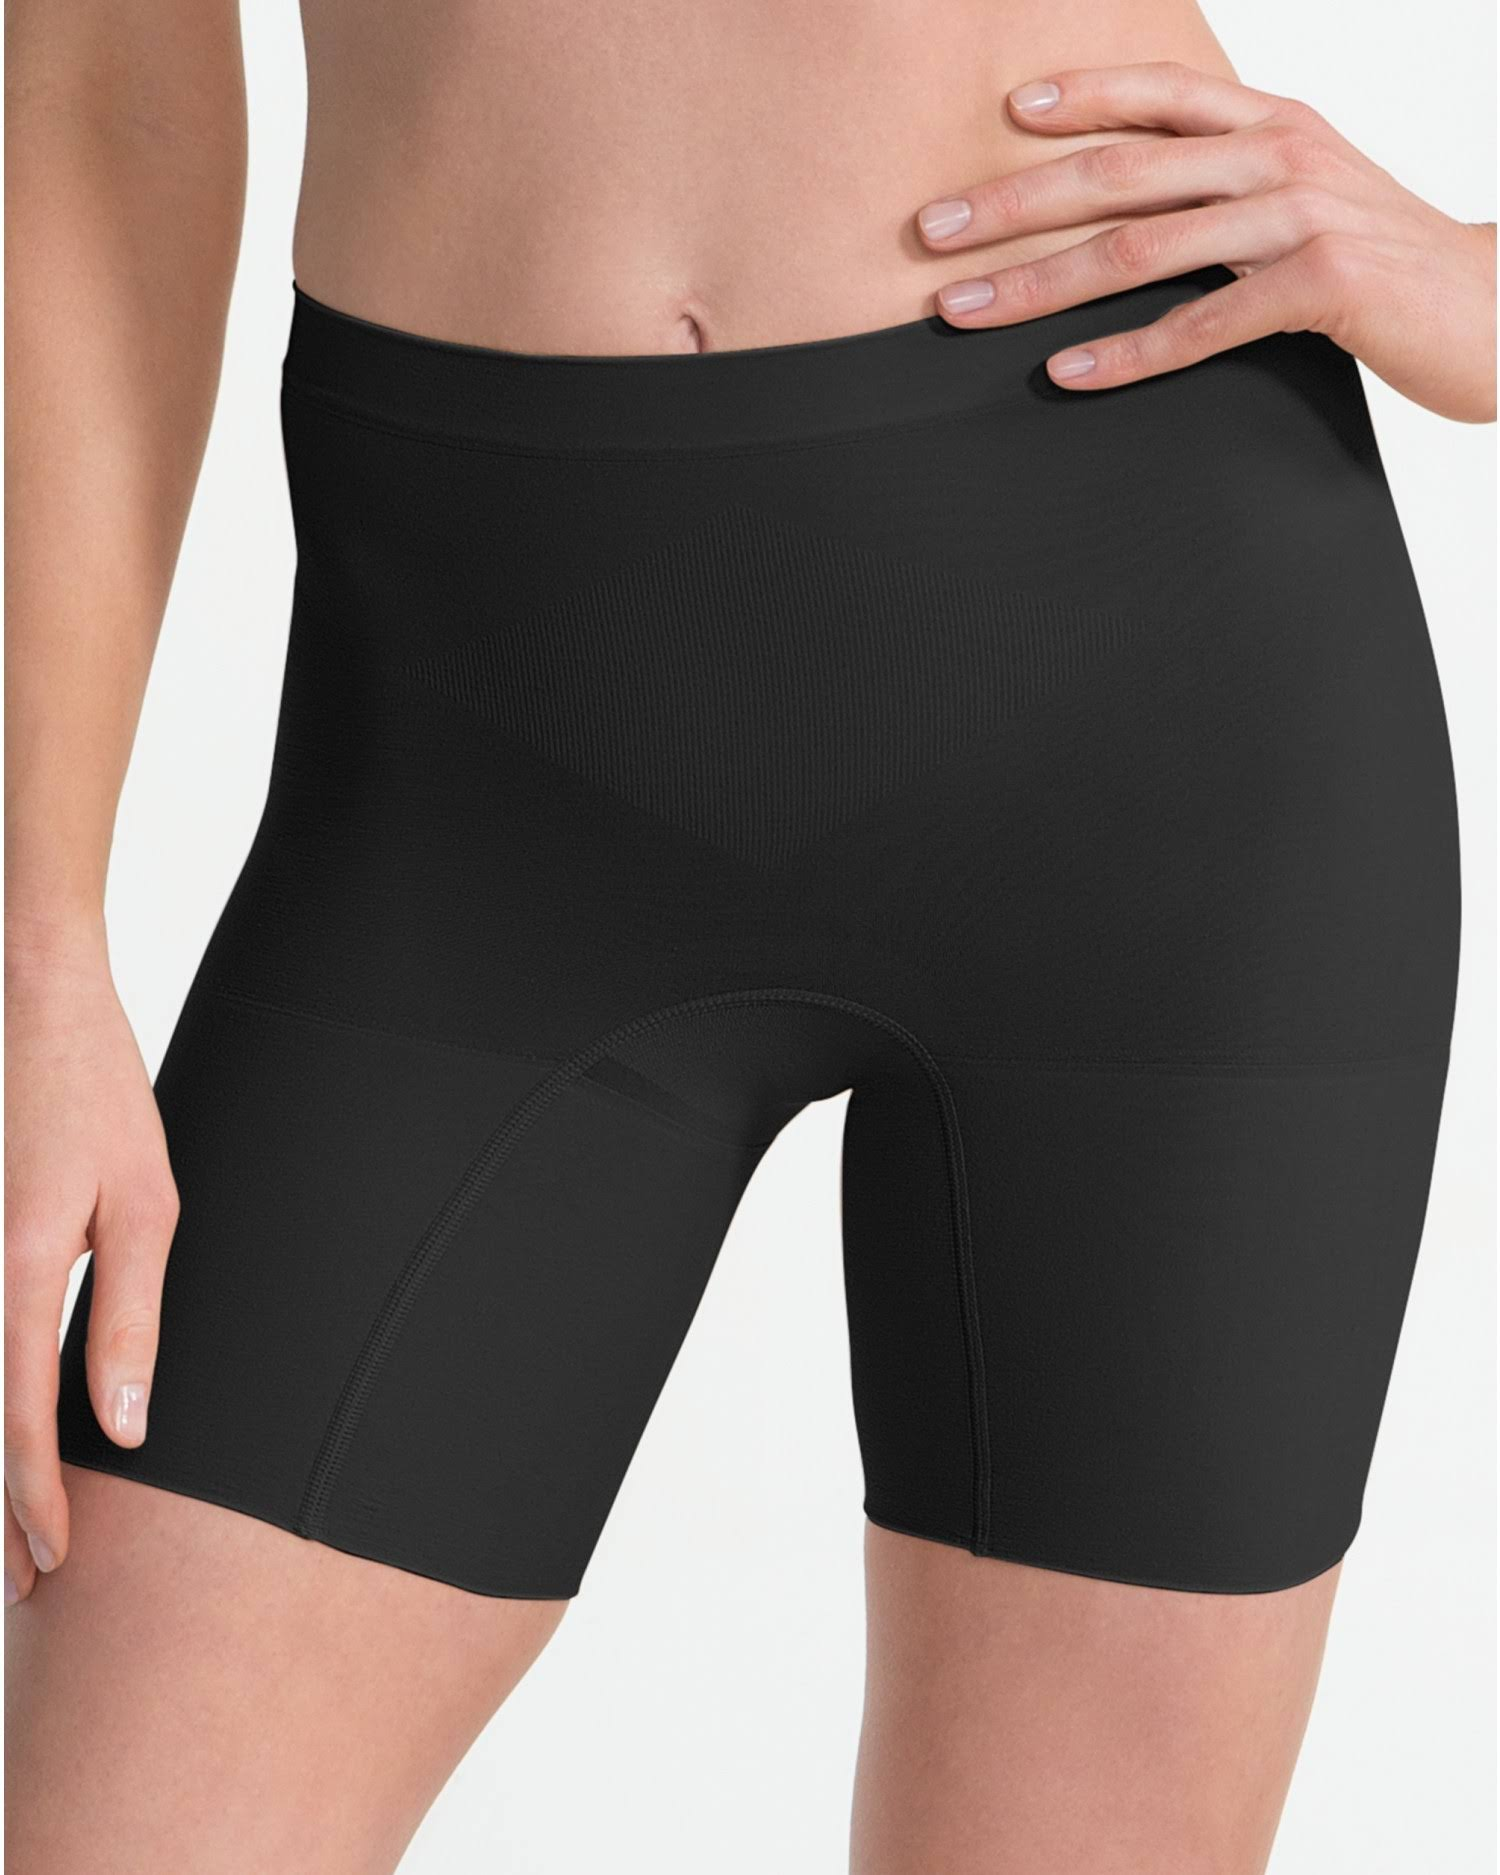 SPANX Power Tummy Control Shorts - Black, X-Large